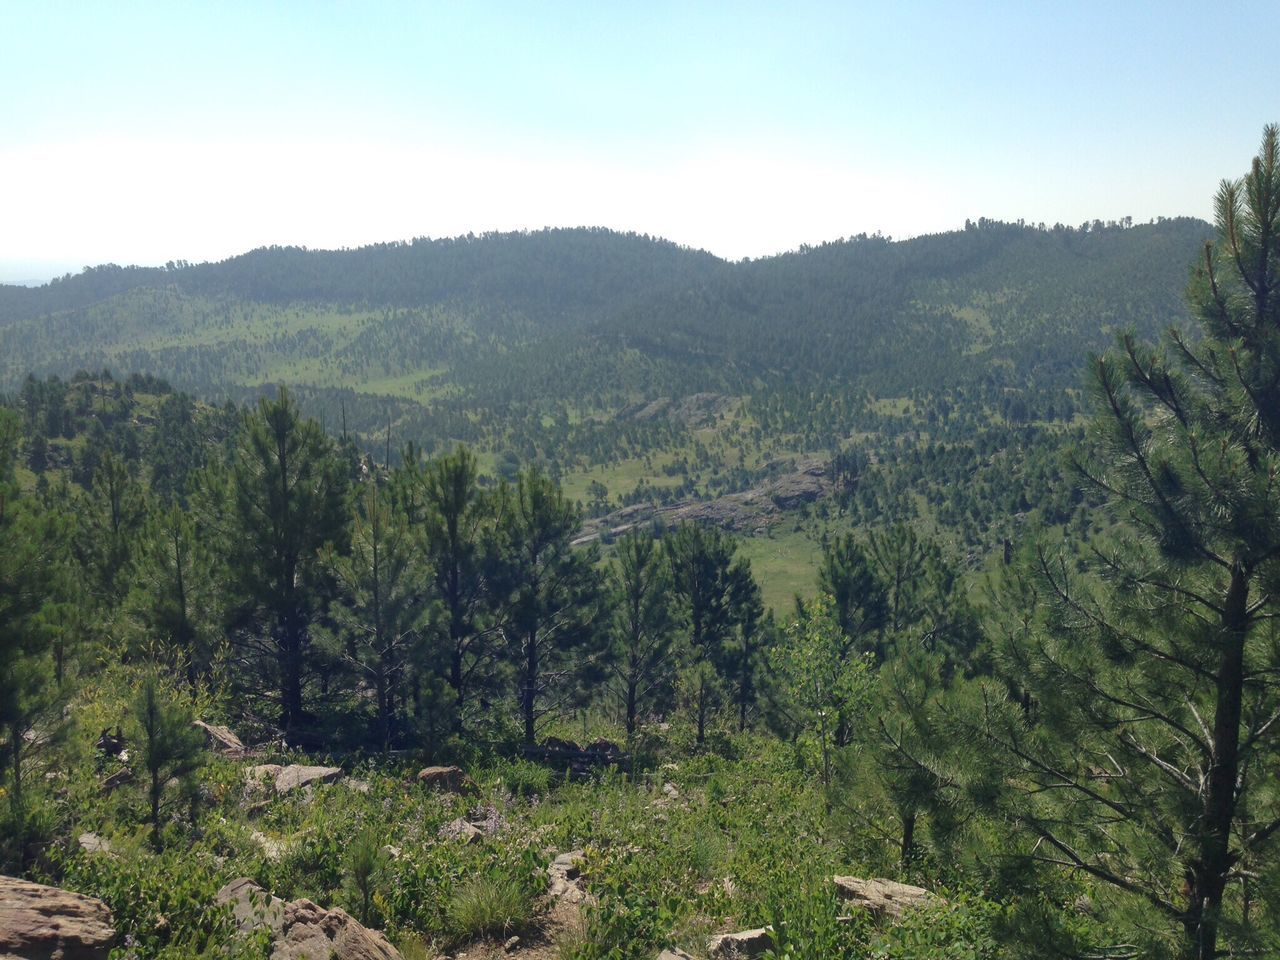 forest, nature, tree, landscape, no people, mountain, outdoors, growth, day, beauty in nature, sky